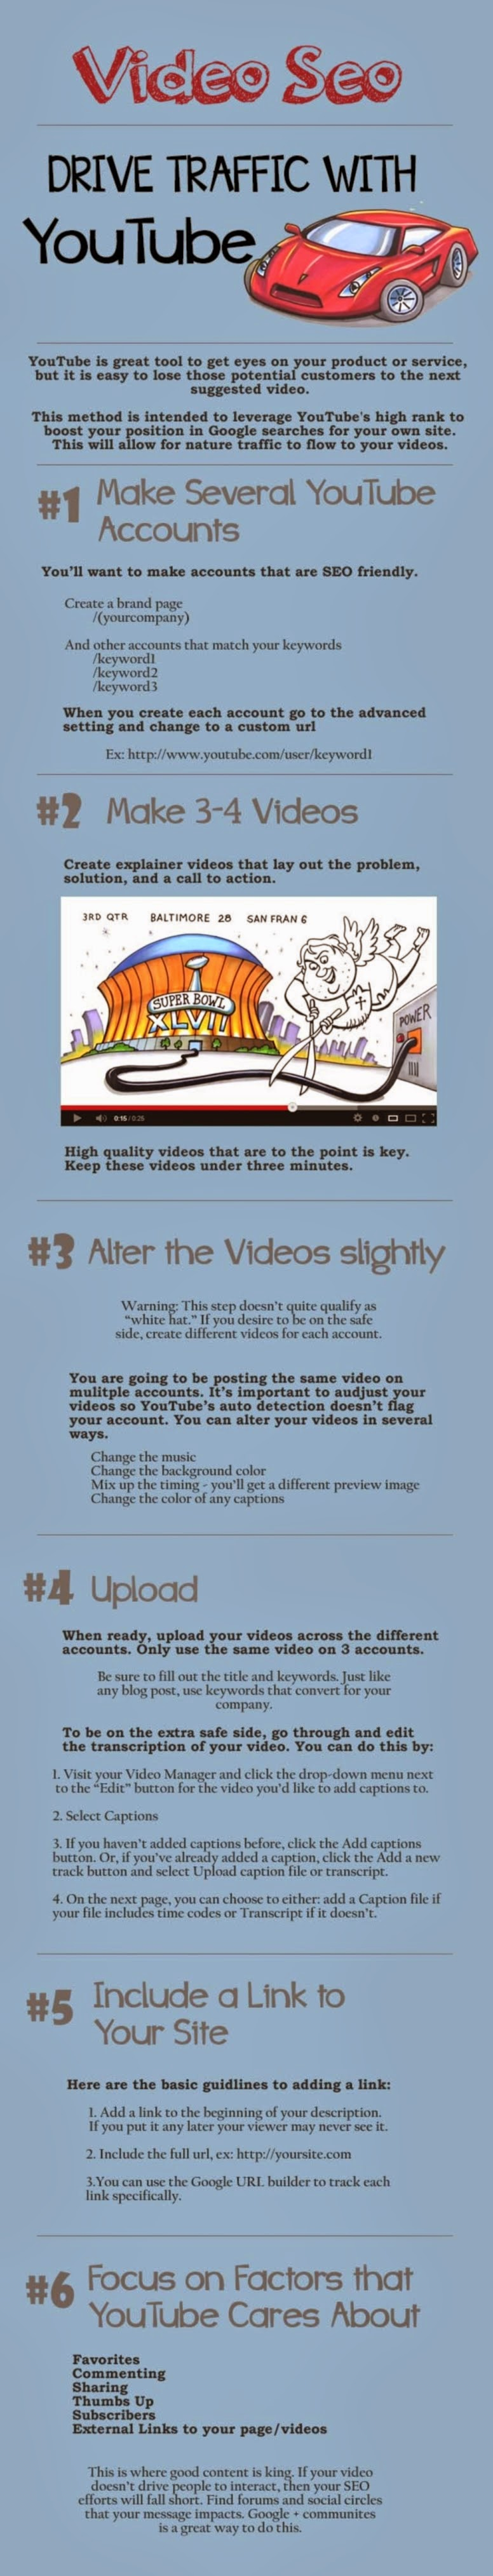 Video SEO, Drive Traffic with Youtube